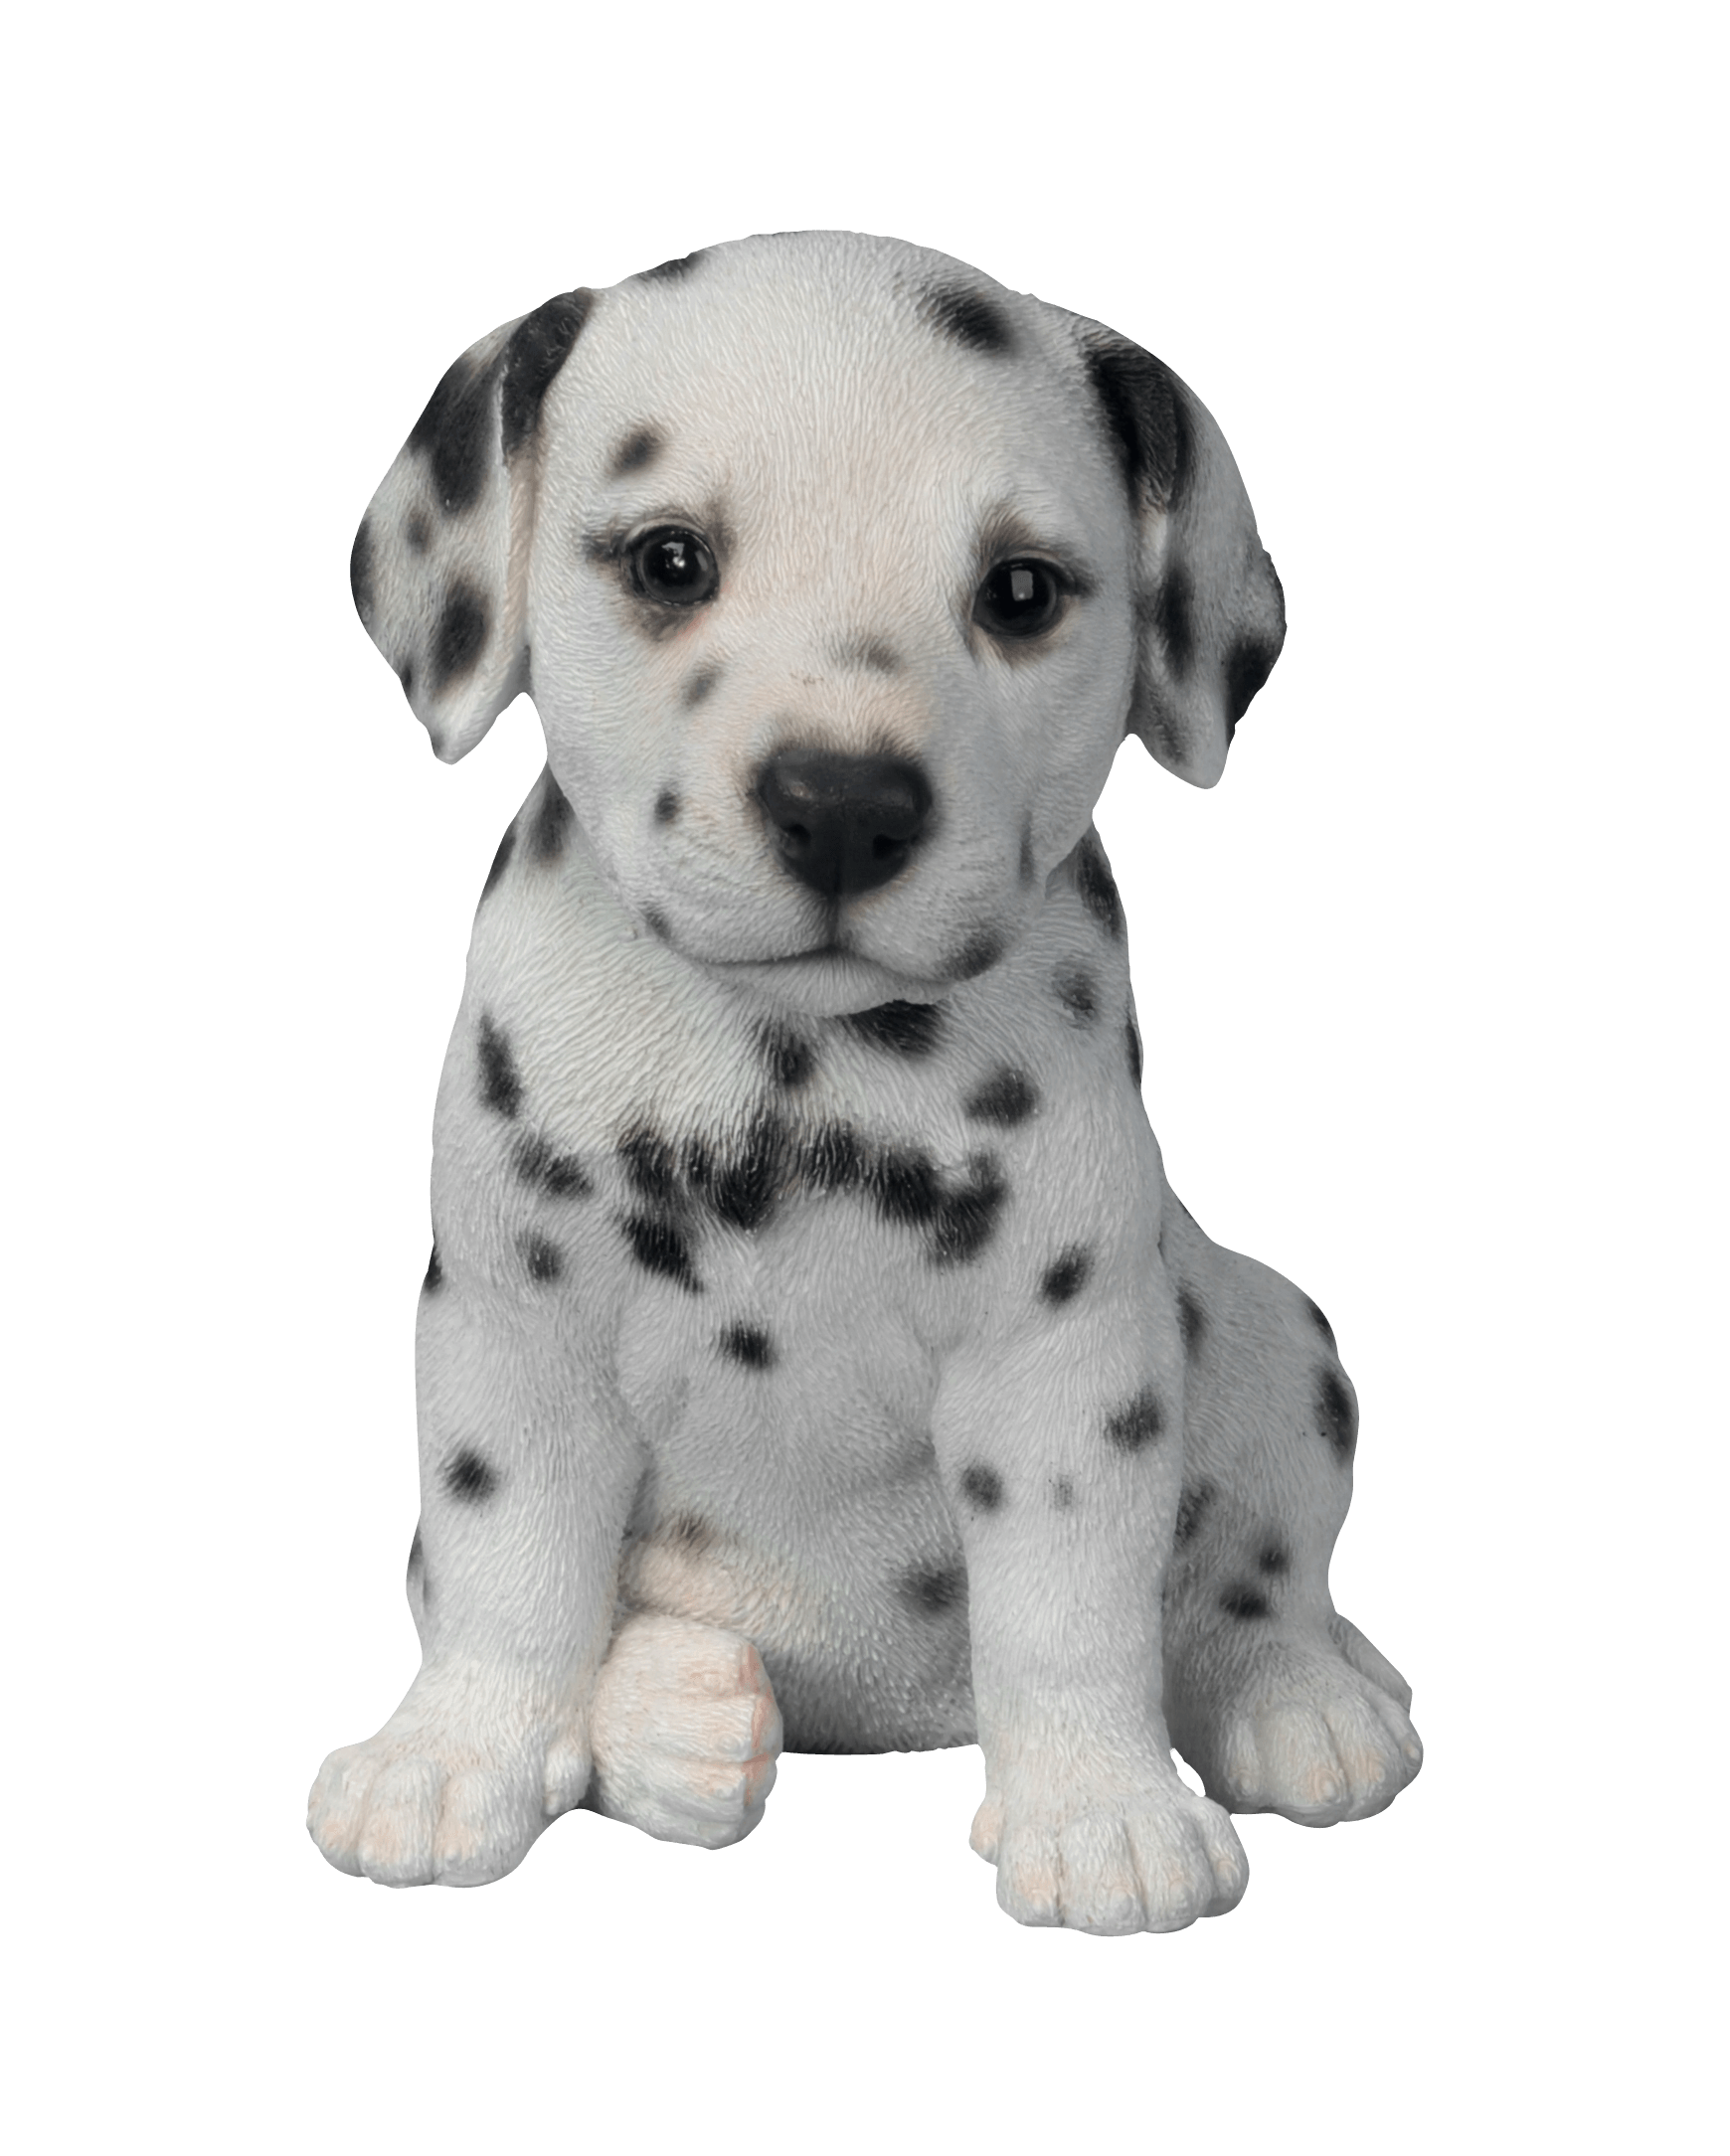 black and white dog png image transparent png #11384